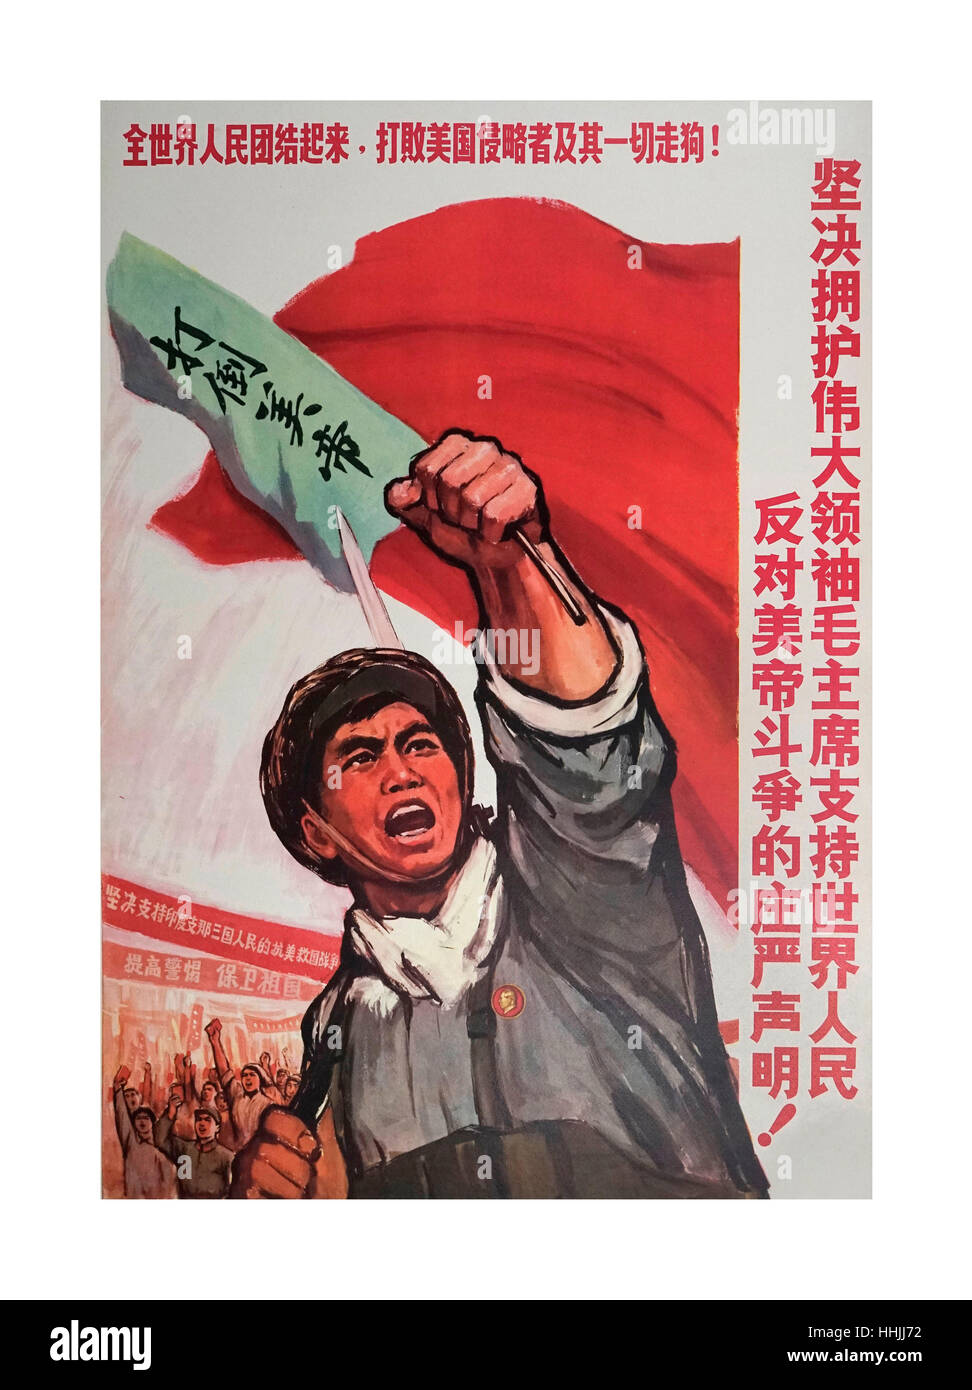 1960's PROPAGANDA CHINESE REVOLUTION VINTAGE POSTER China's Great Proletarian Cultural Revolution - Stock Image